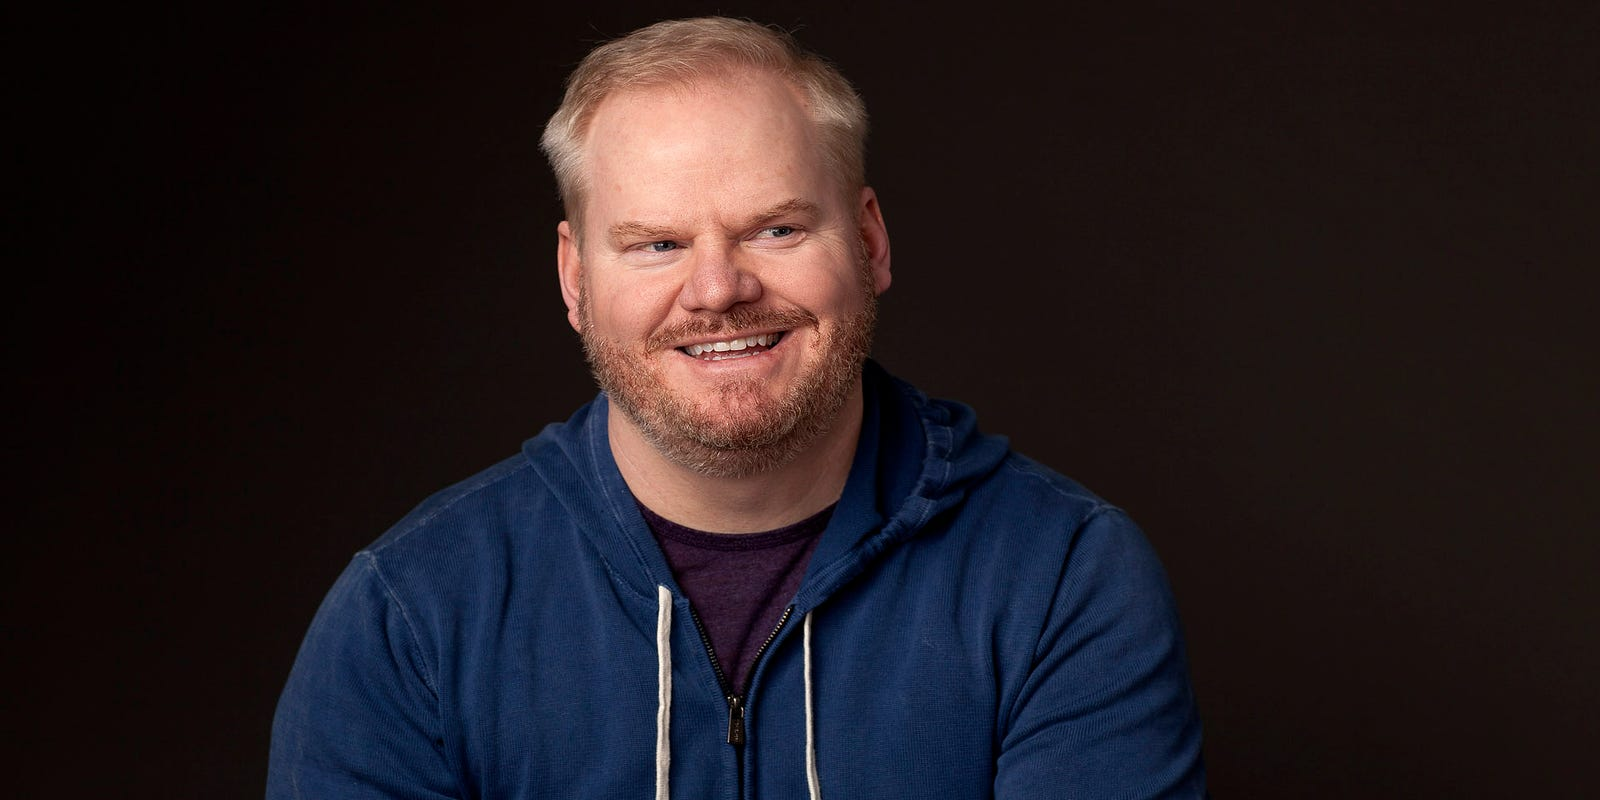 'There's obviously no health department in Rochester.' Comedian Jim Gaffigan talks Garbage Plates on Conan show.